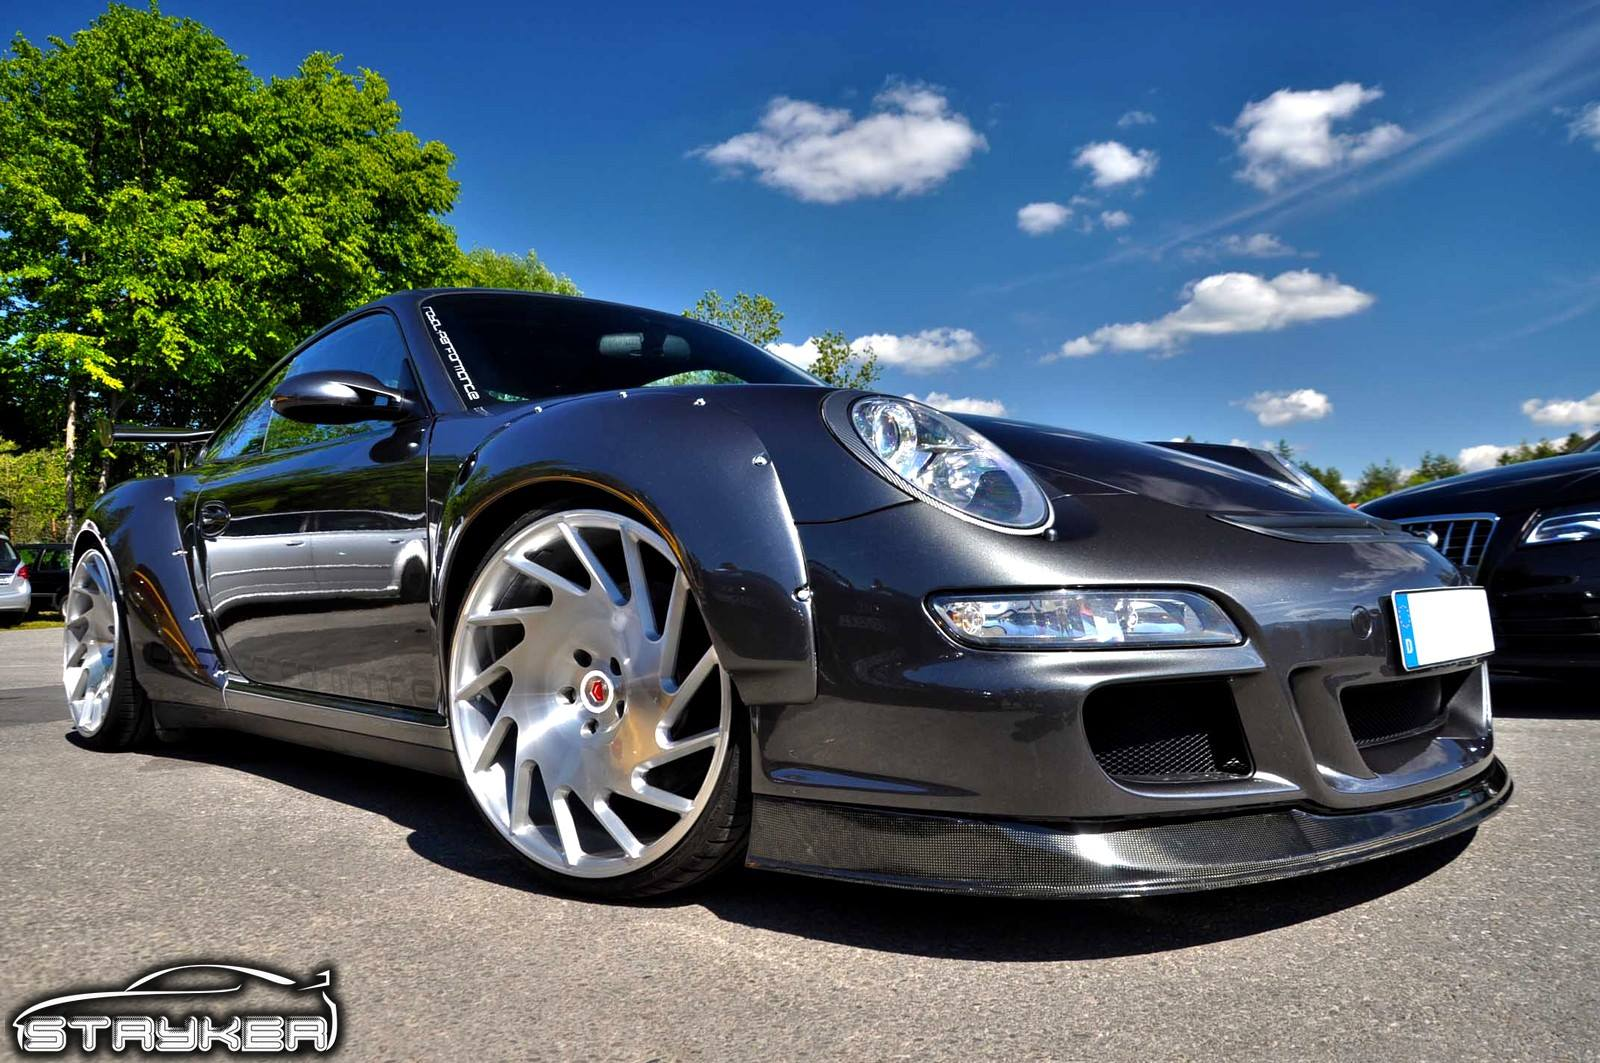 Vossen S New Vle 1 Wheels On A Stillen G37 And Porsche 997 Carscoops Com